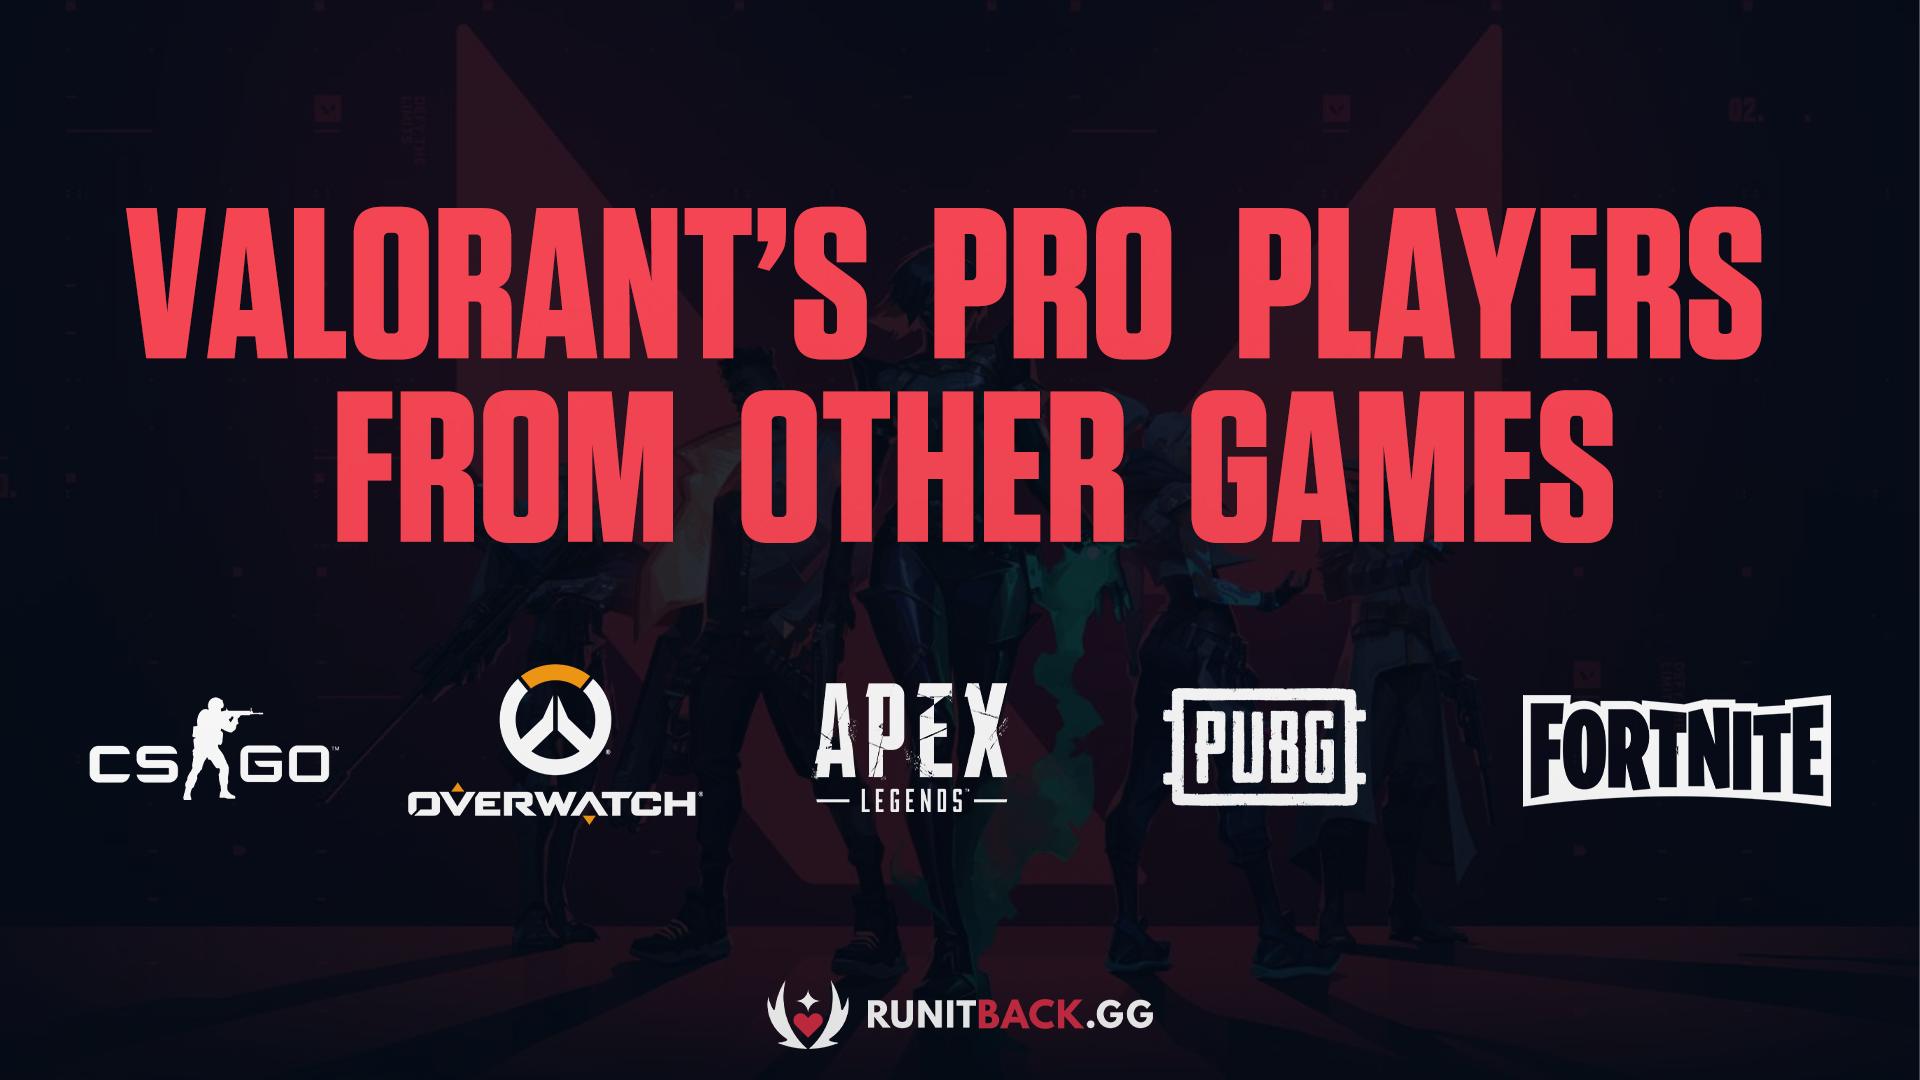 Valorant's Pro Players from Other Games